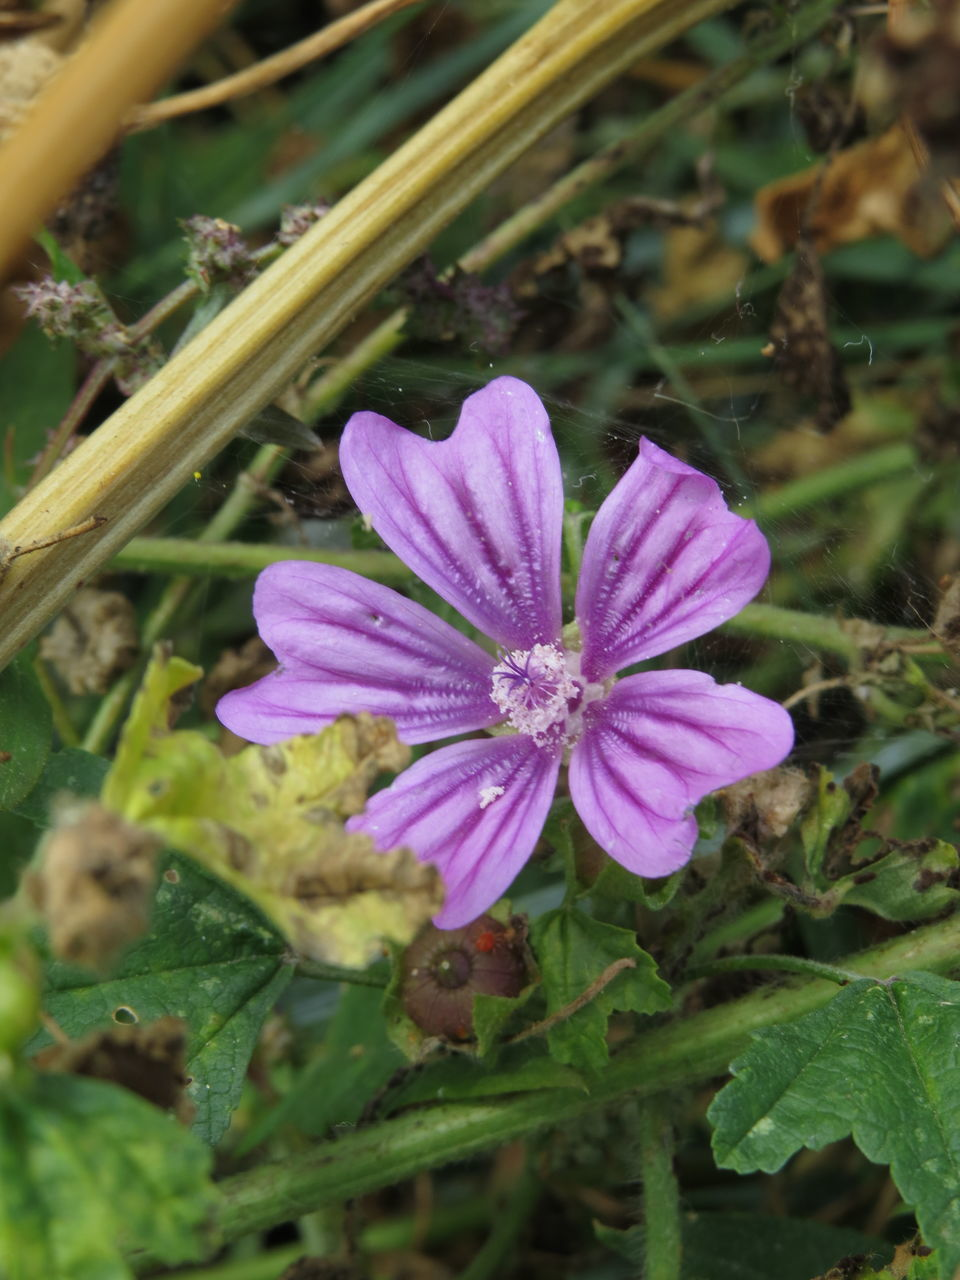 CLOSE-UP OF PURPLE FLOWERS